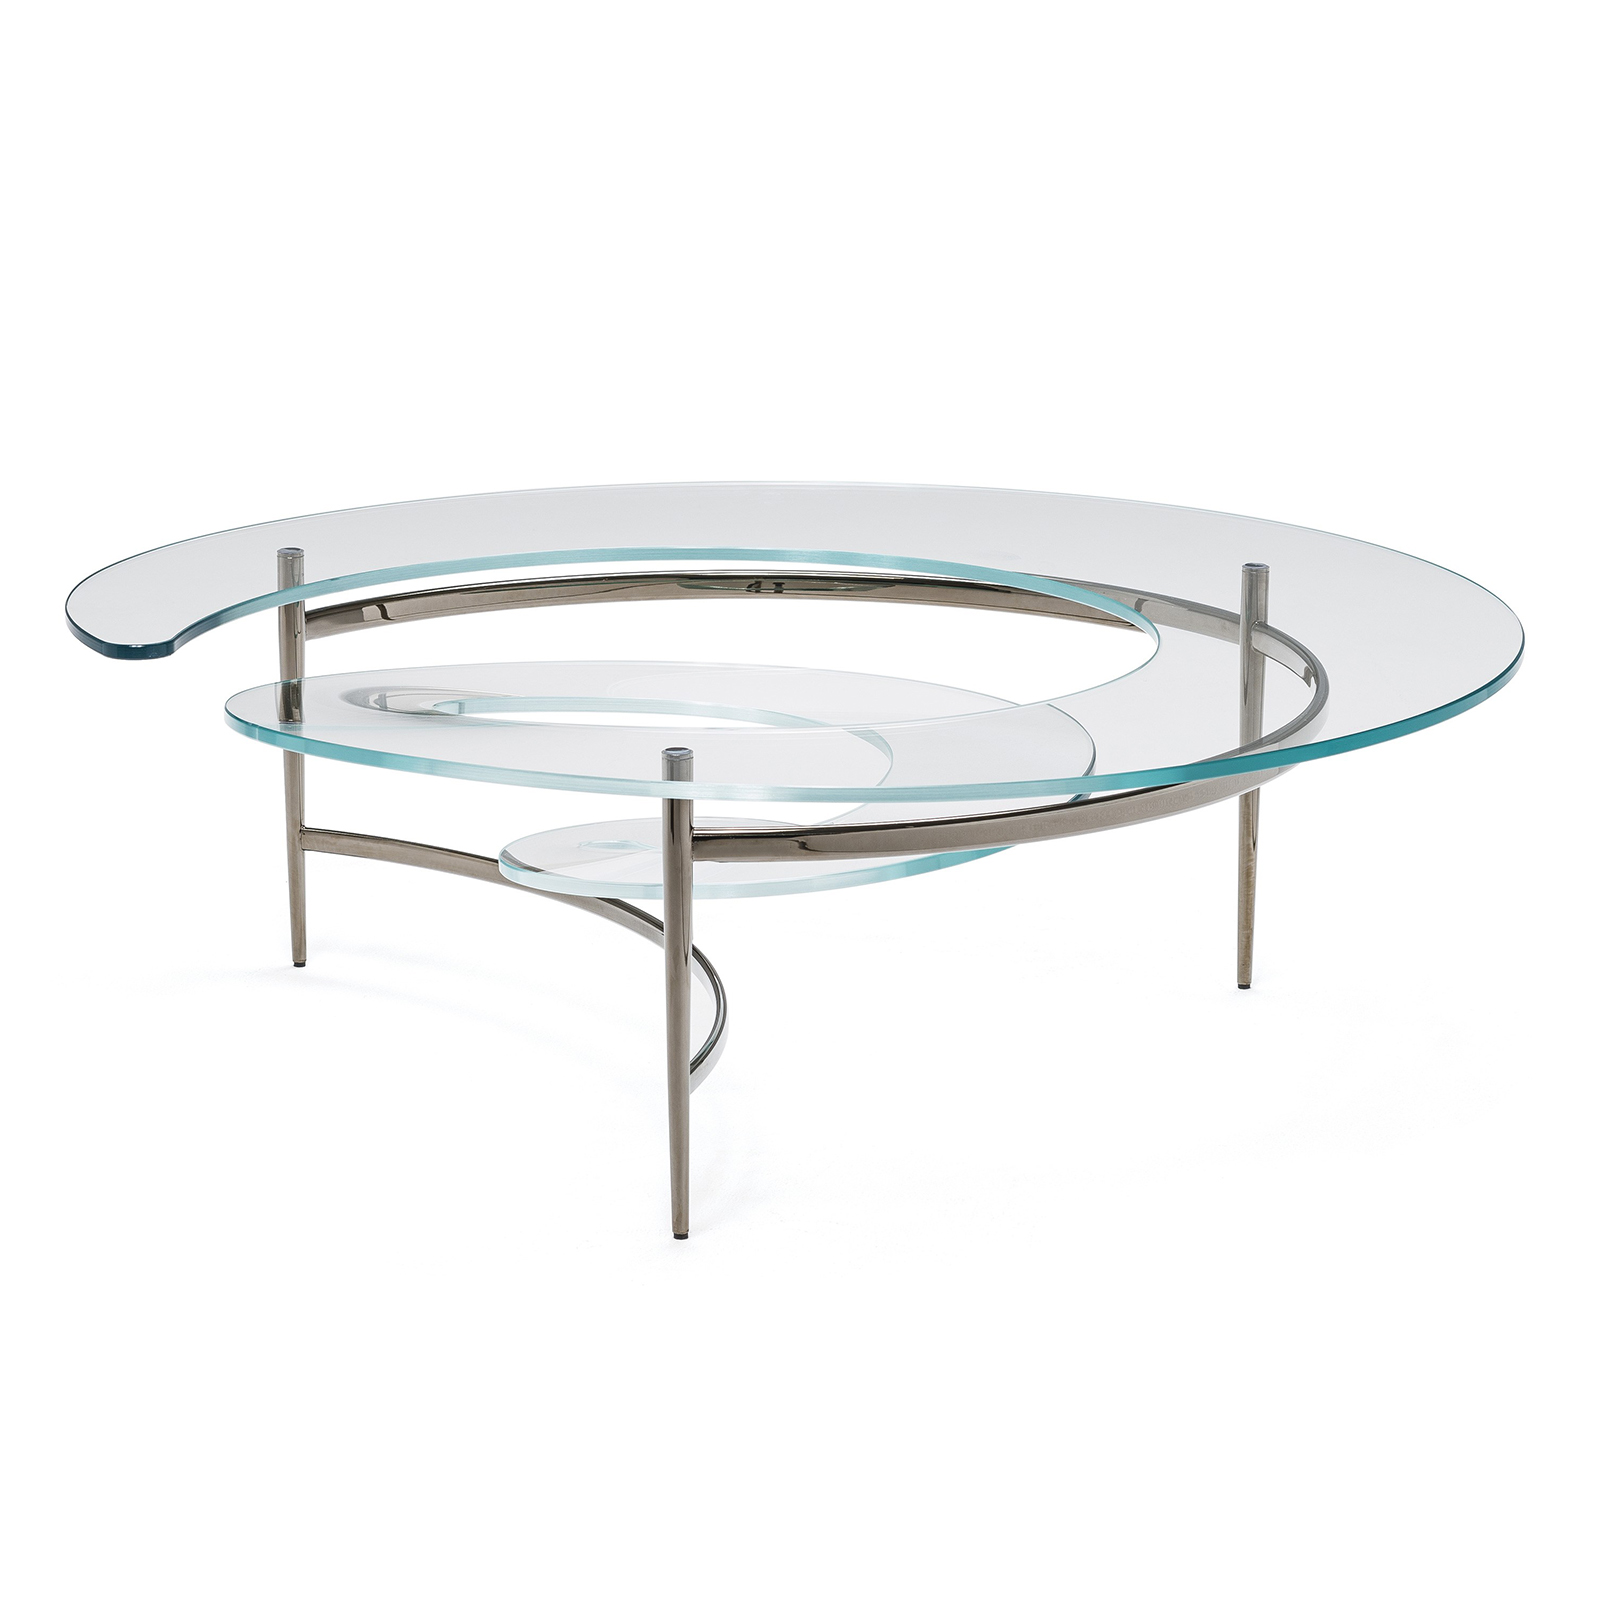 Table basse design en verre spirale mobilier de luxe for Table basse verre design